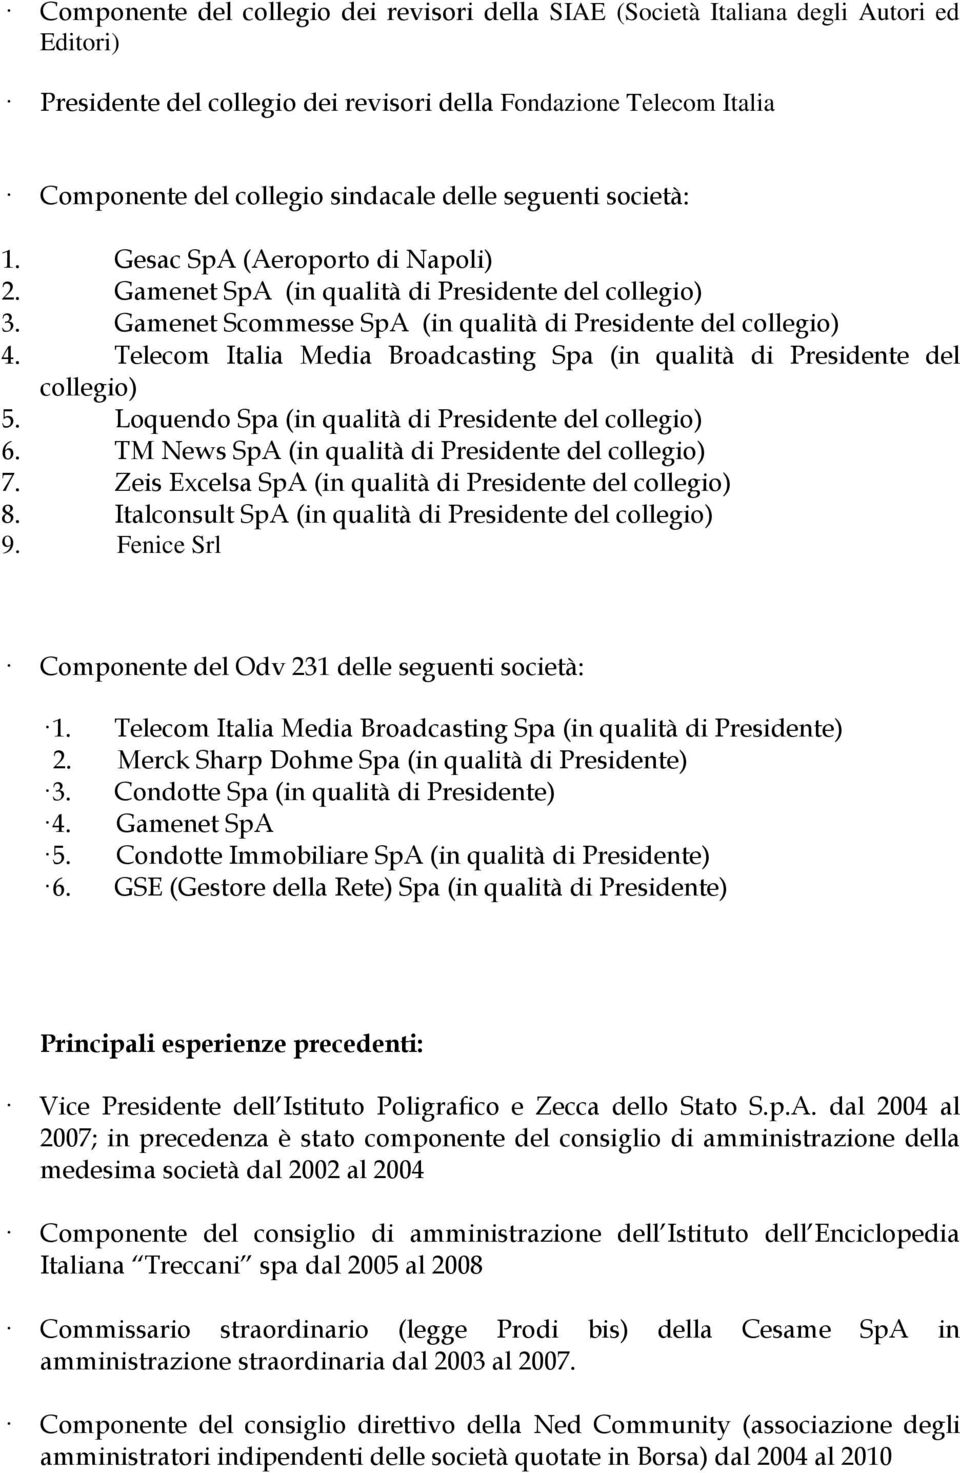 Telecom Italia Media Broadcasting Spa (in qualità di Presidente del collegio) 5. Loquendo Spa (in qualità di Presidente del collegio) 6. TM News SpA (in qualità di Presidente del collegio) 7.